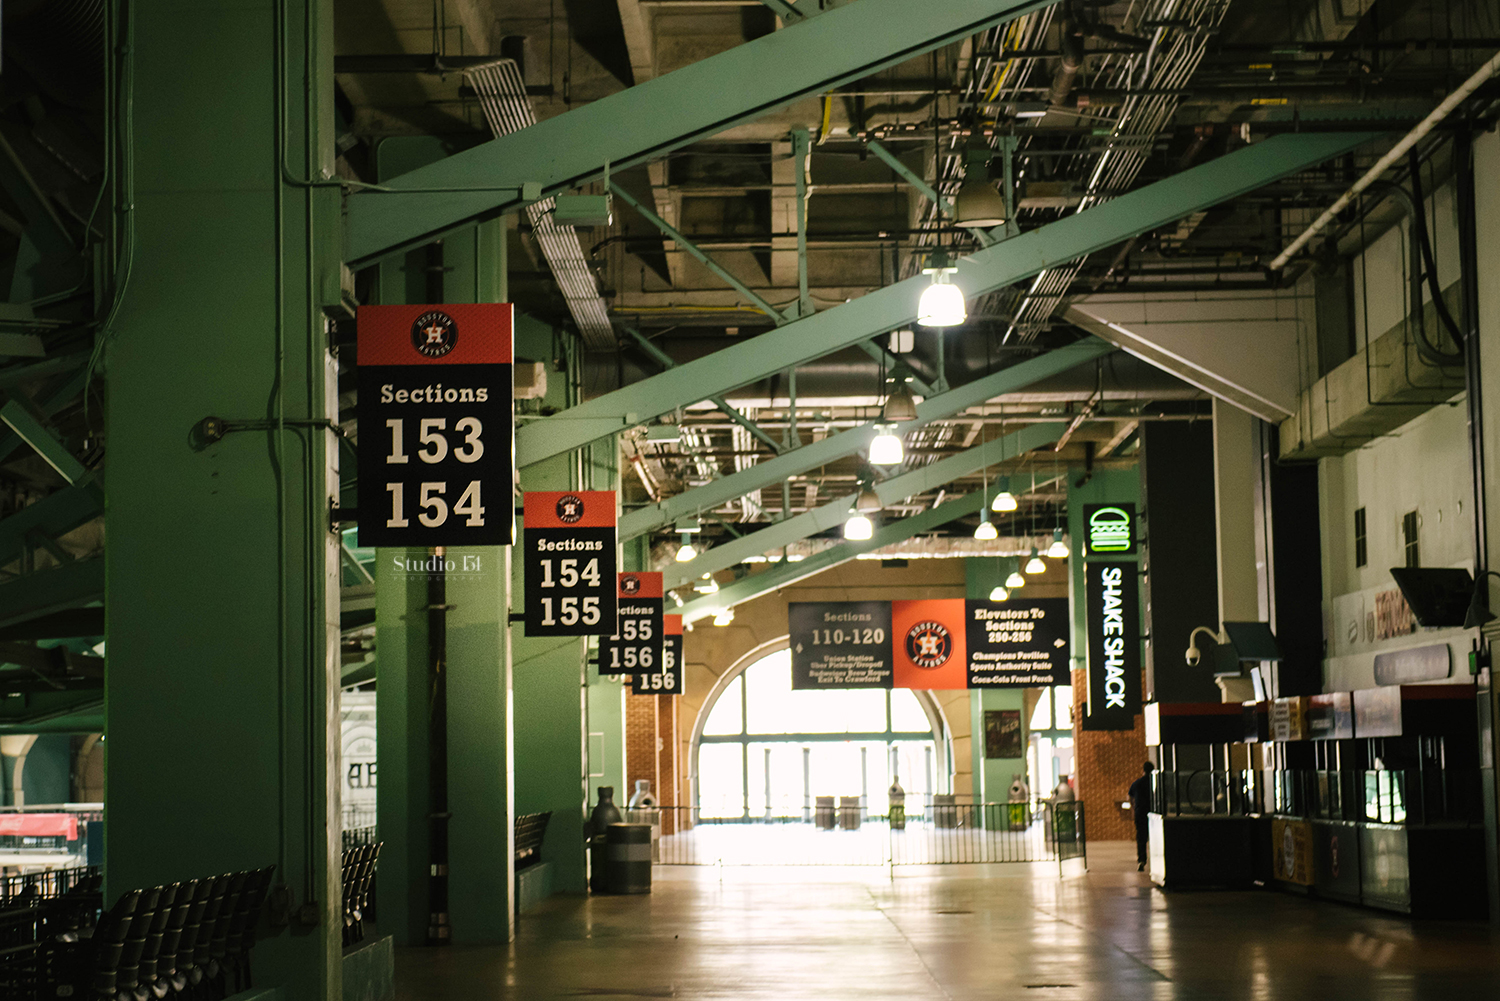 Astros Minute Maid Park